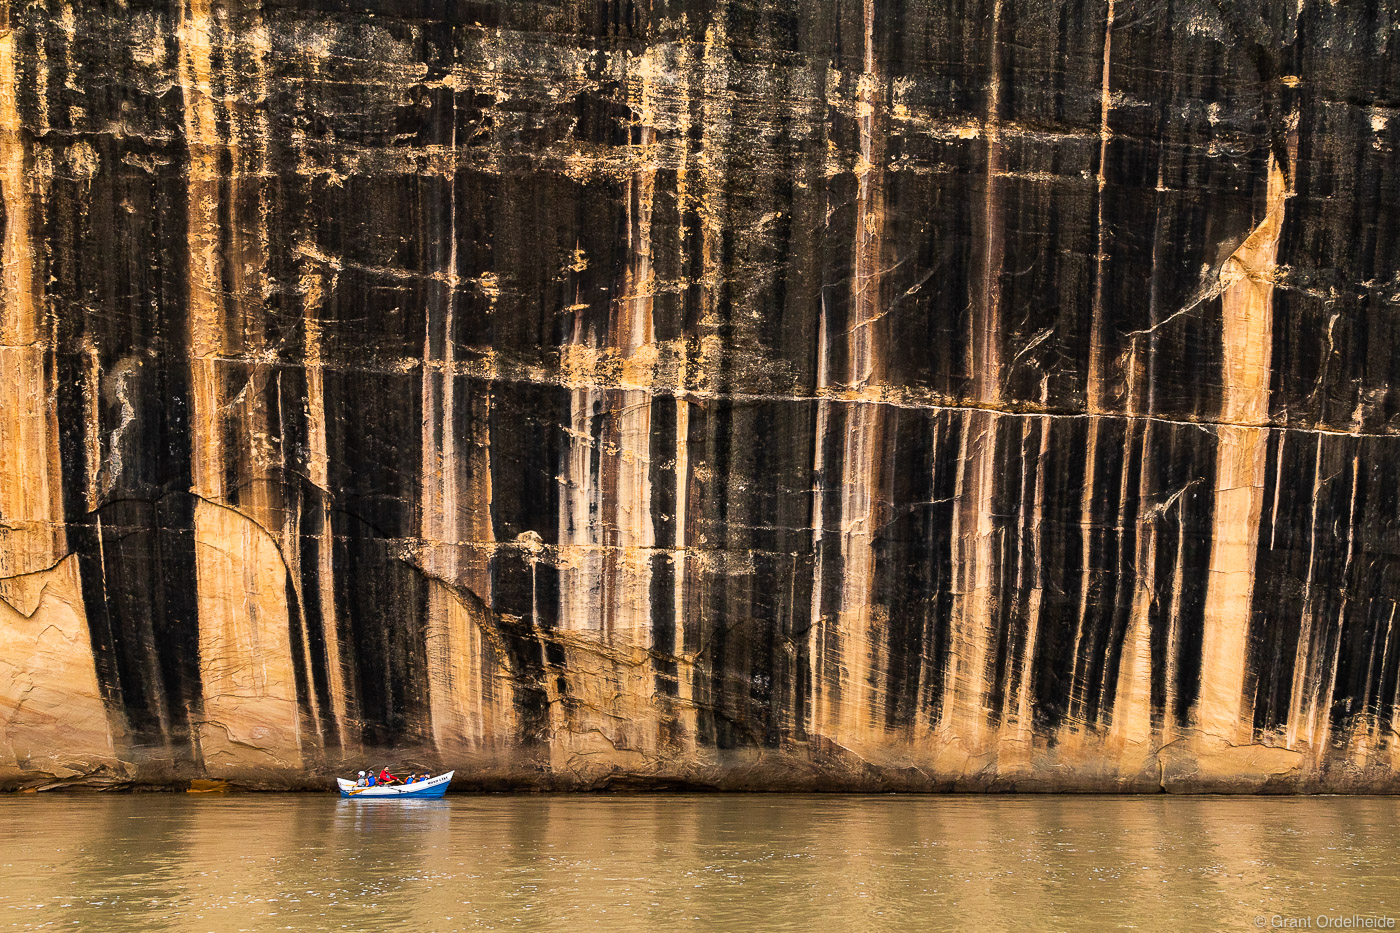 A dory boat passing below the Tiger Wall, a feature along the Yampa River in Dinosaur National Monument.